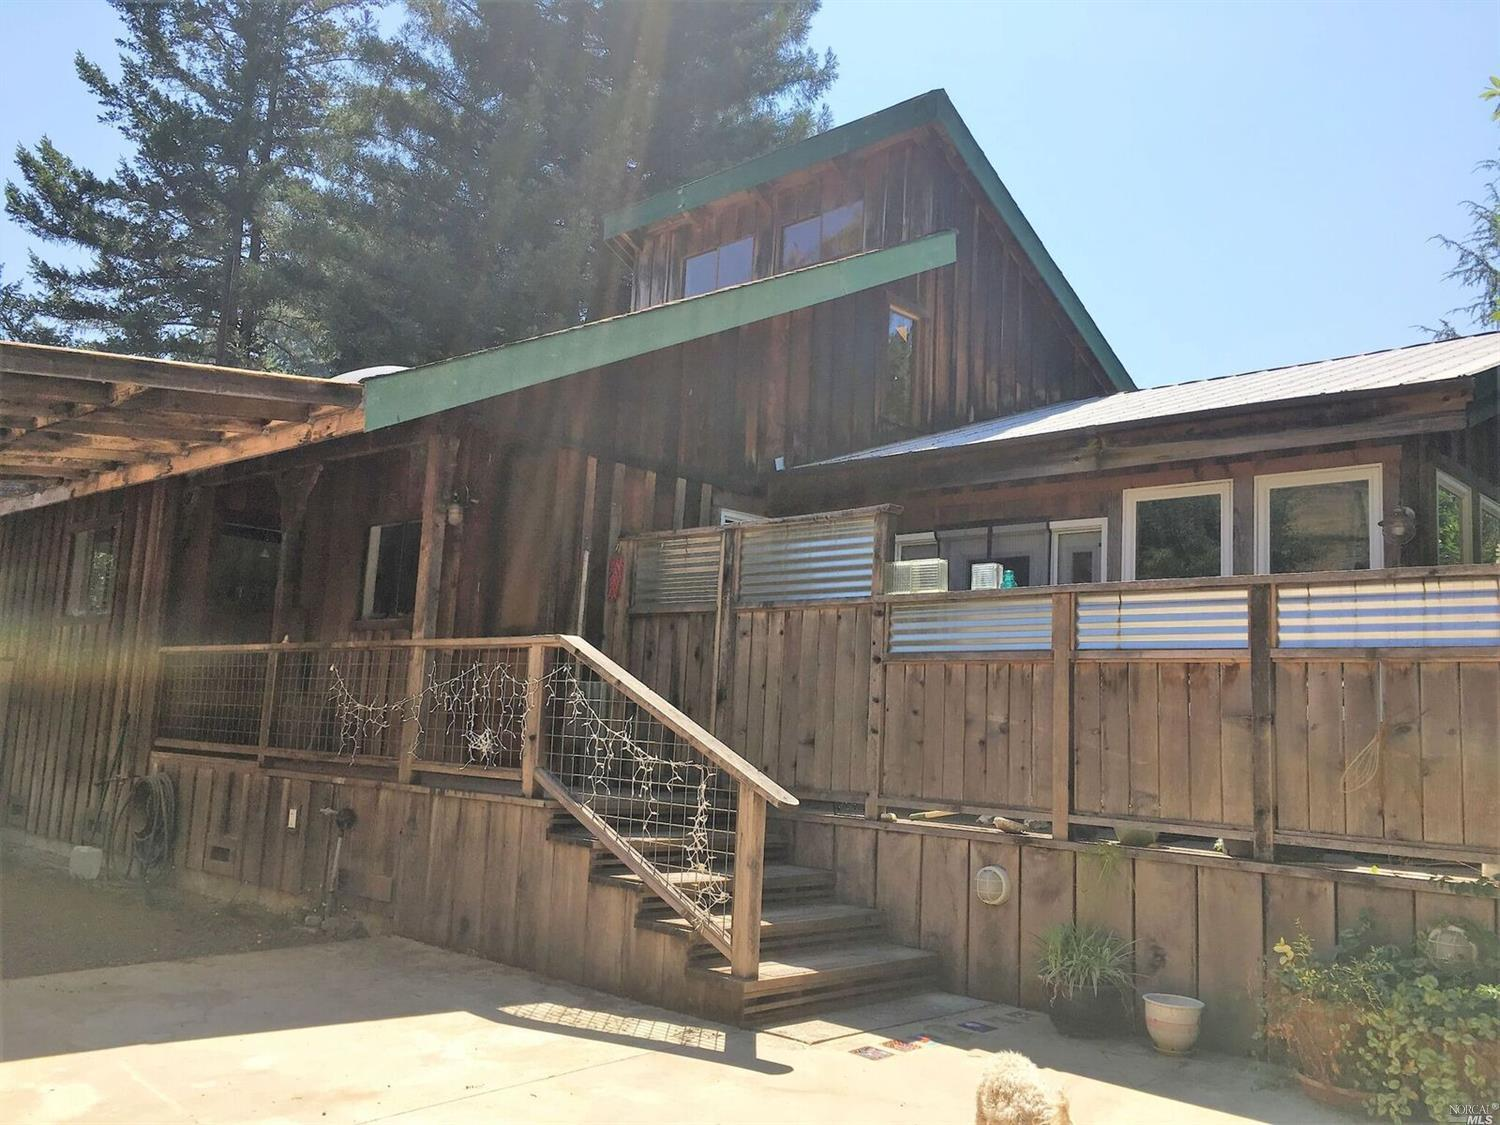 A beautiful redwood home on a property for sale on Guntly Road in Philo, CA.